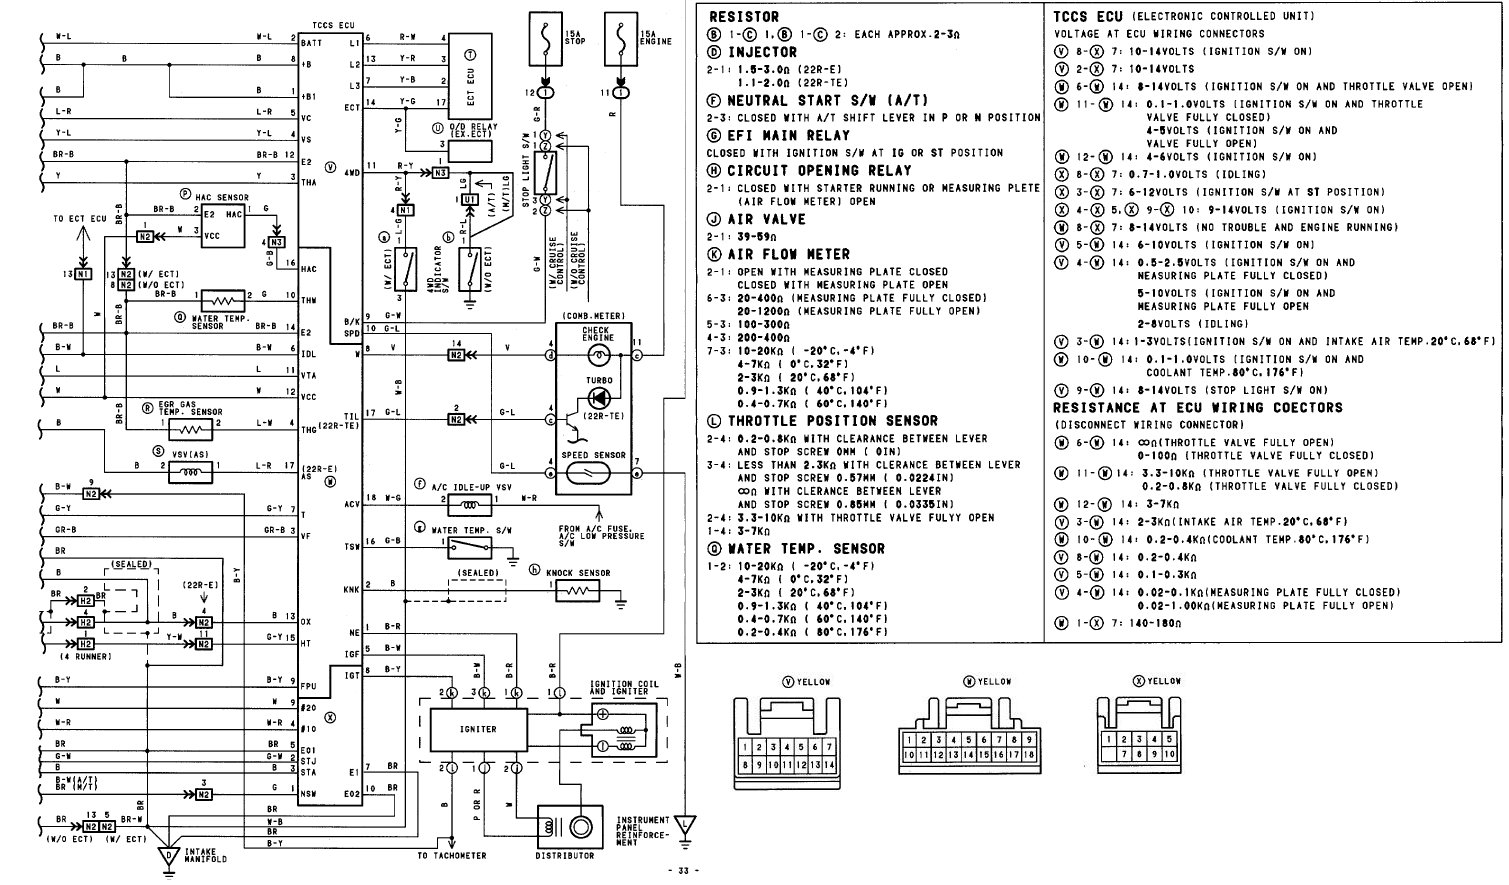 toyota 4runner wiring diagram jHkLHrj 2005 toyota 4runner wiring diagram wiring diagram simonand 2004 toyota 4runner radio wiring diagram at panicattacktreatment.co